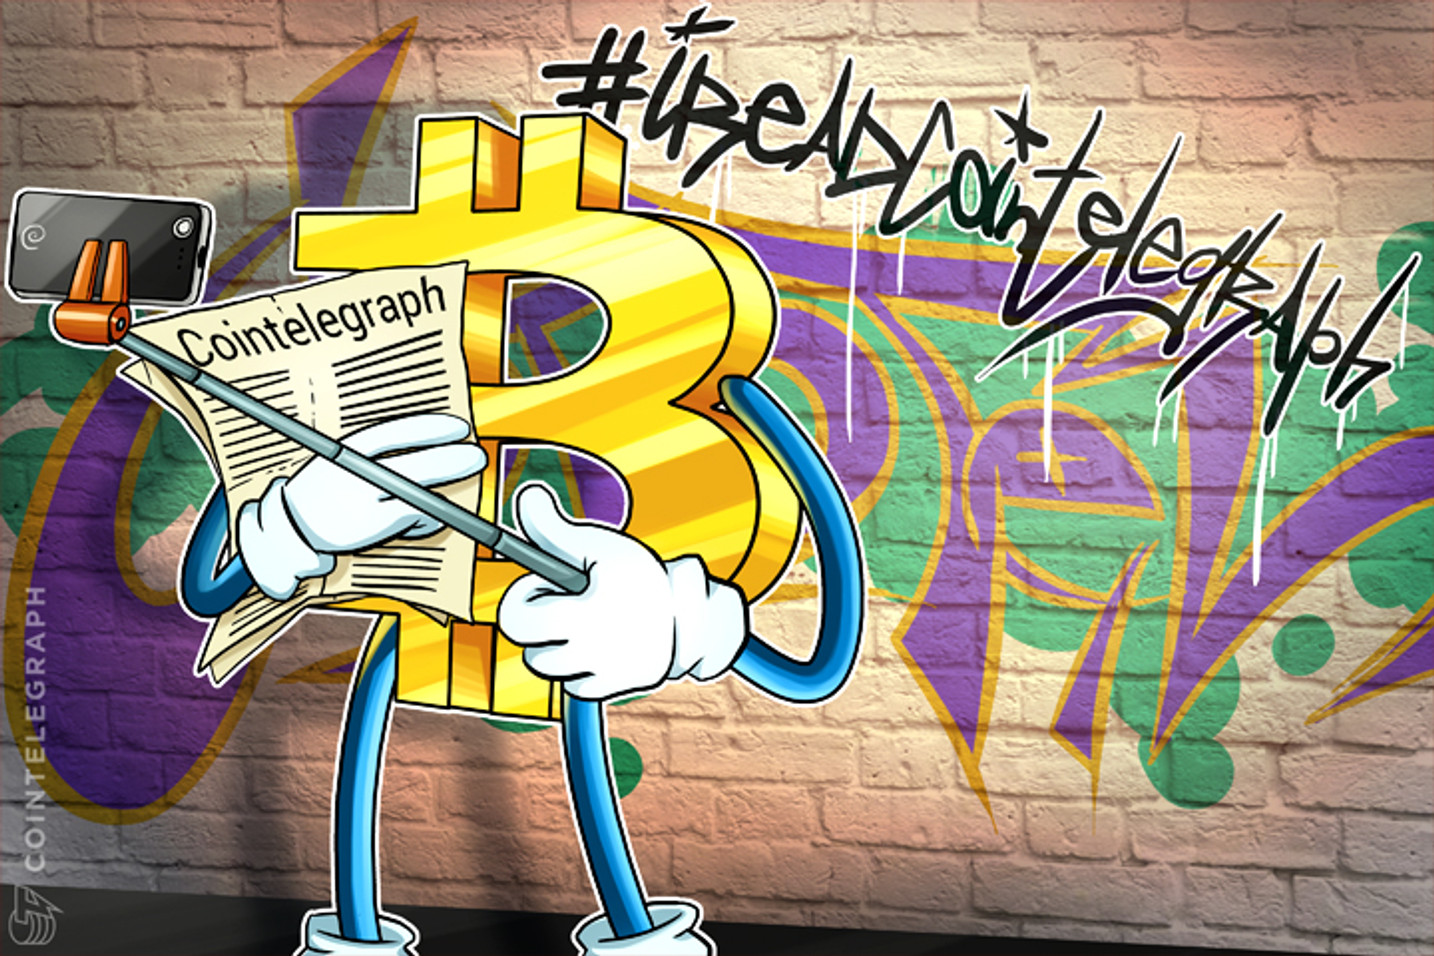 Cointelegraph Launches Social Media Contest